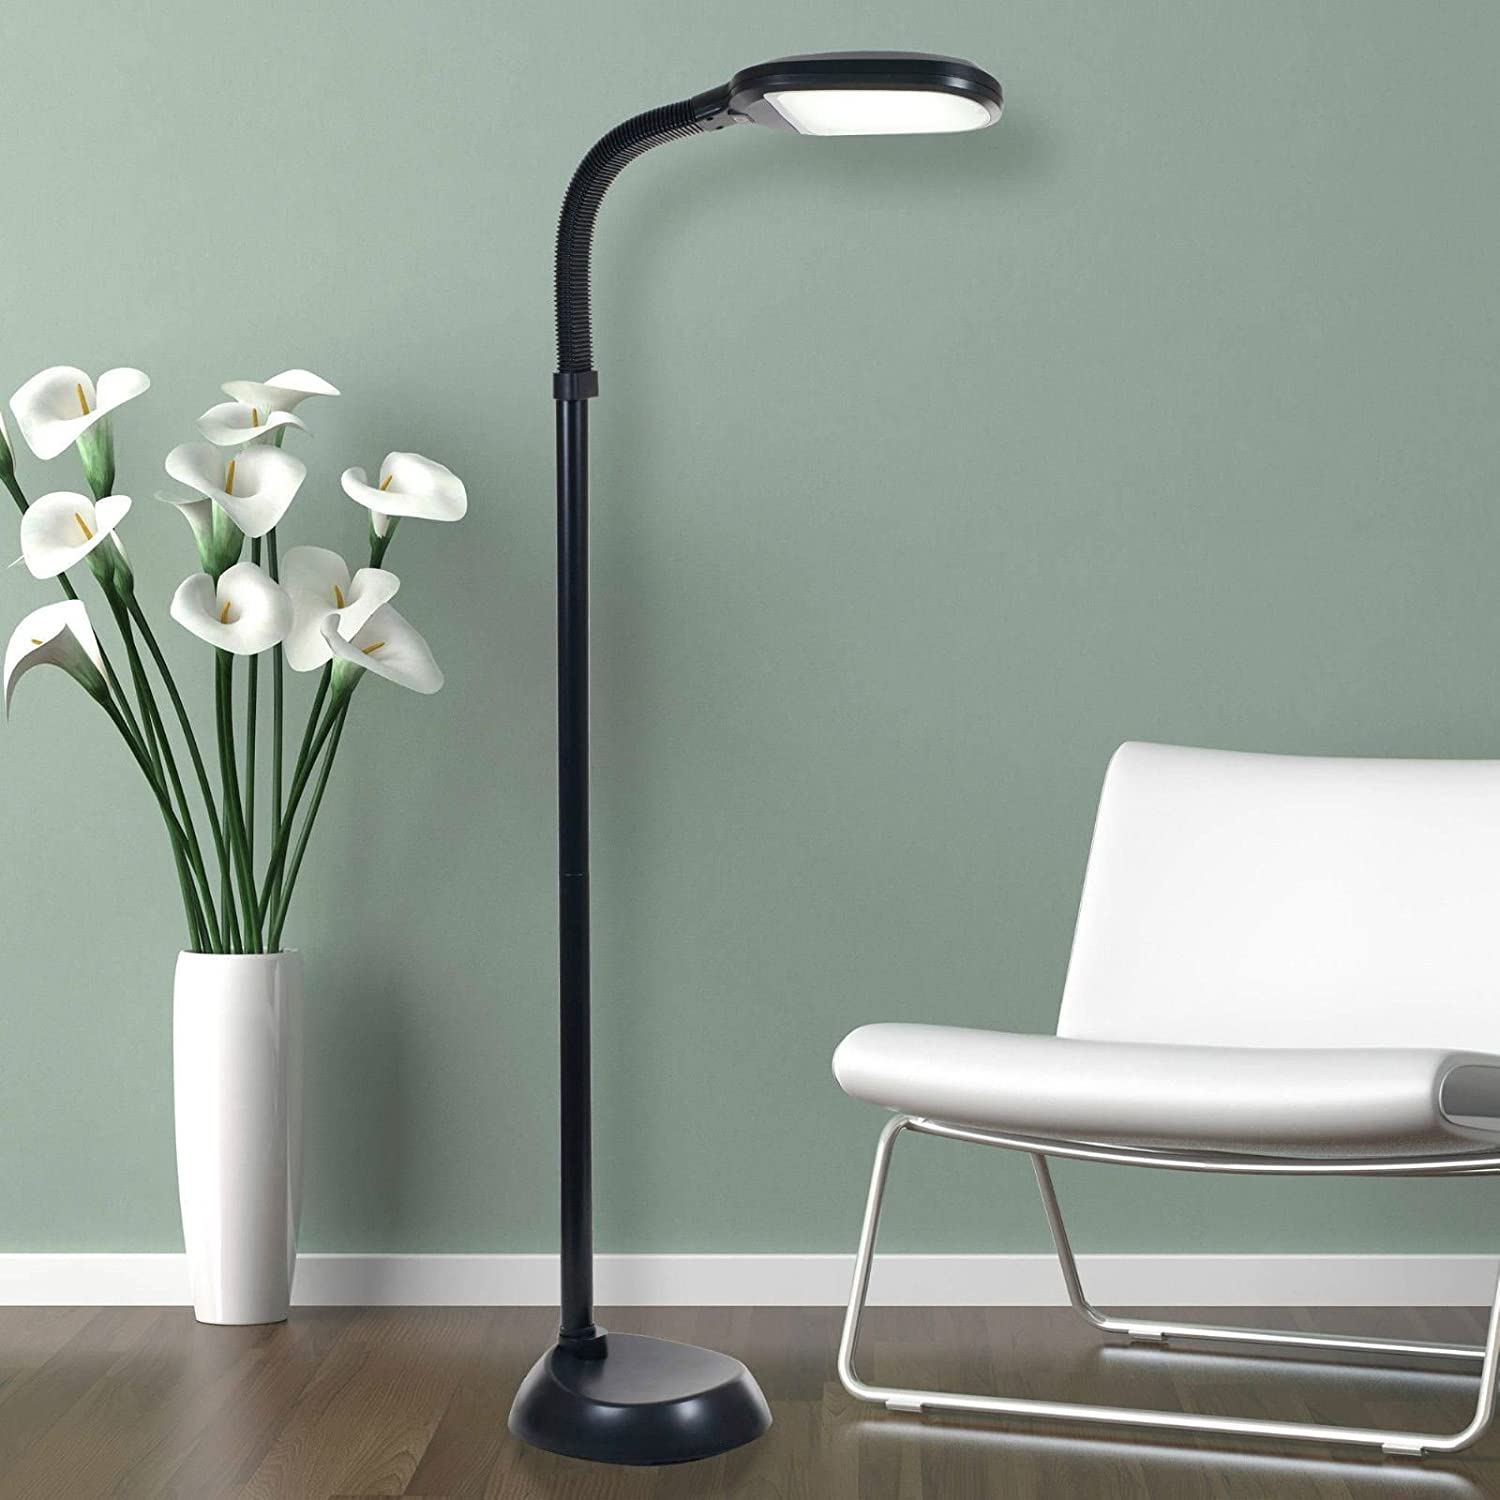 27W Energy Saving Daylight SAD Reading Hobby Craft Floor Standing Lamp Light New (Black) Rockline